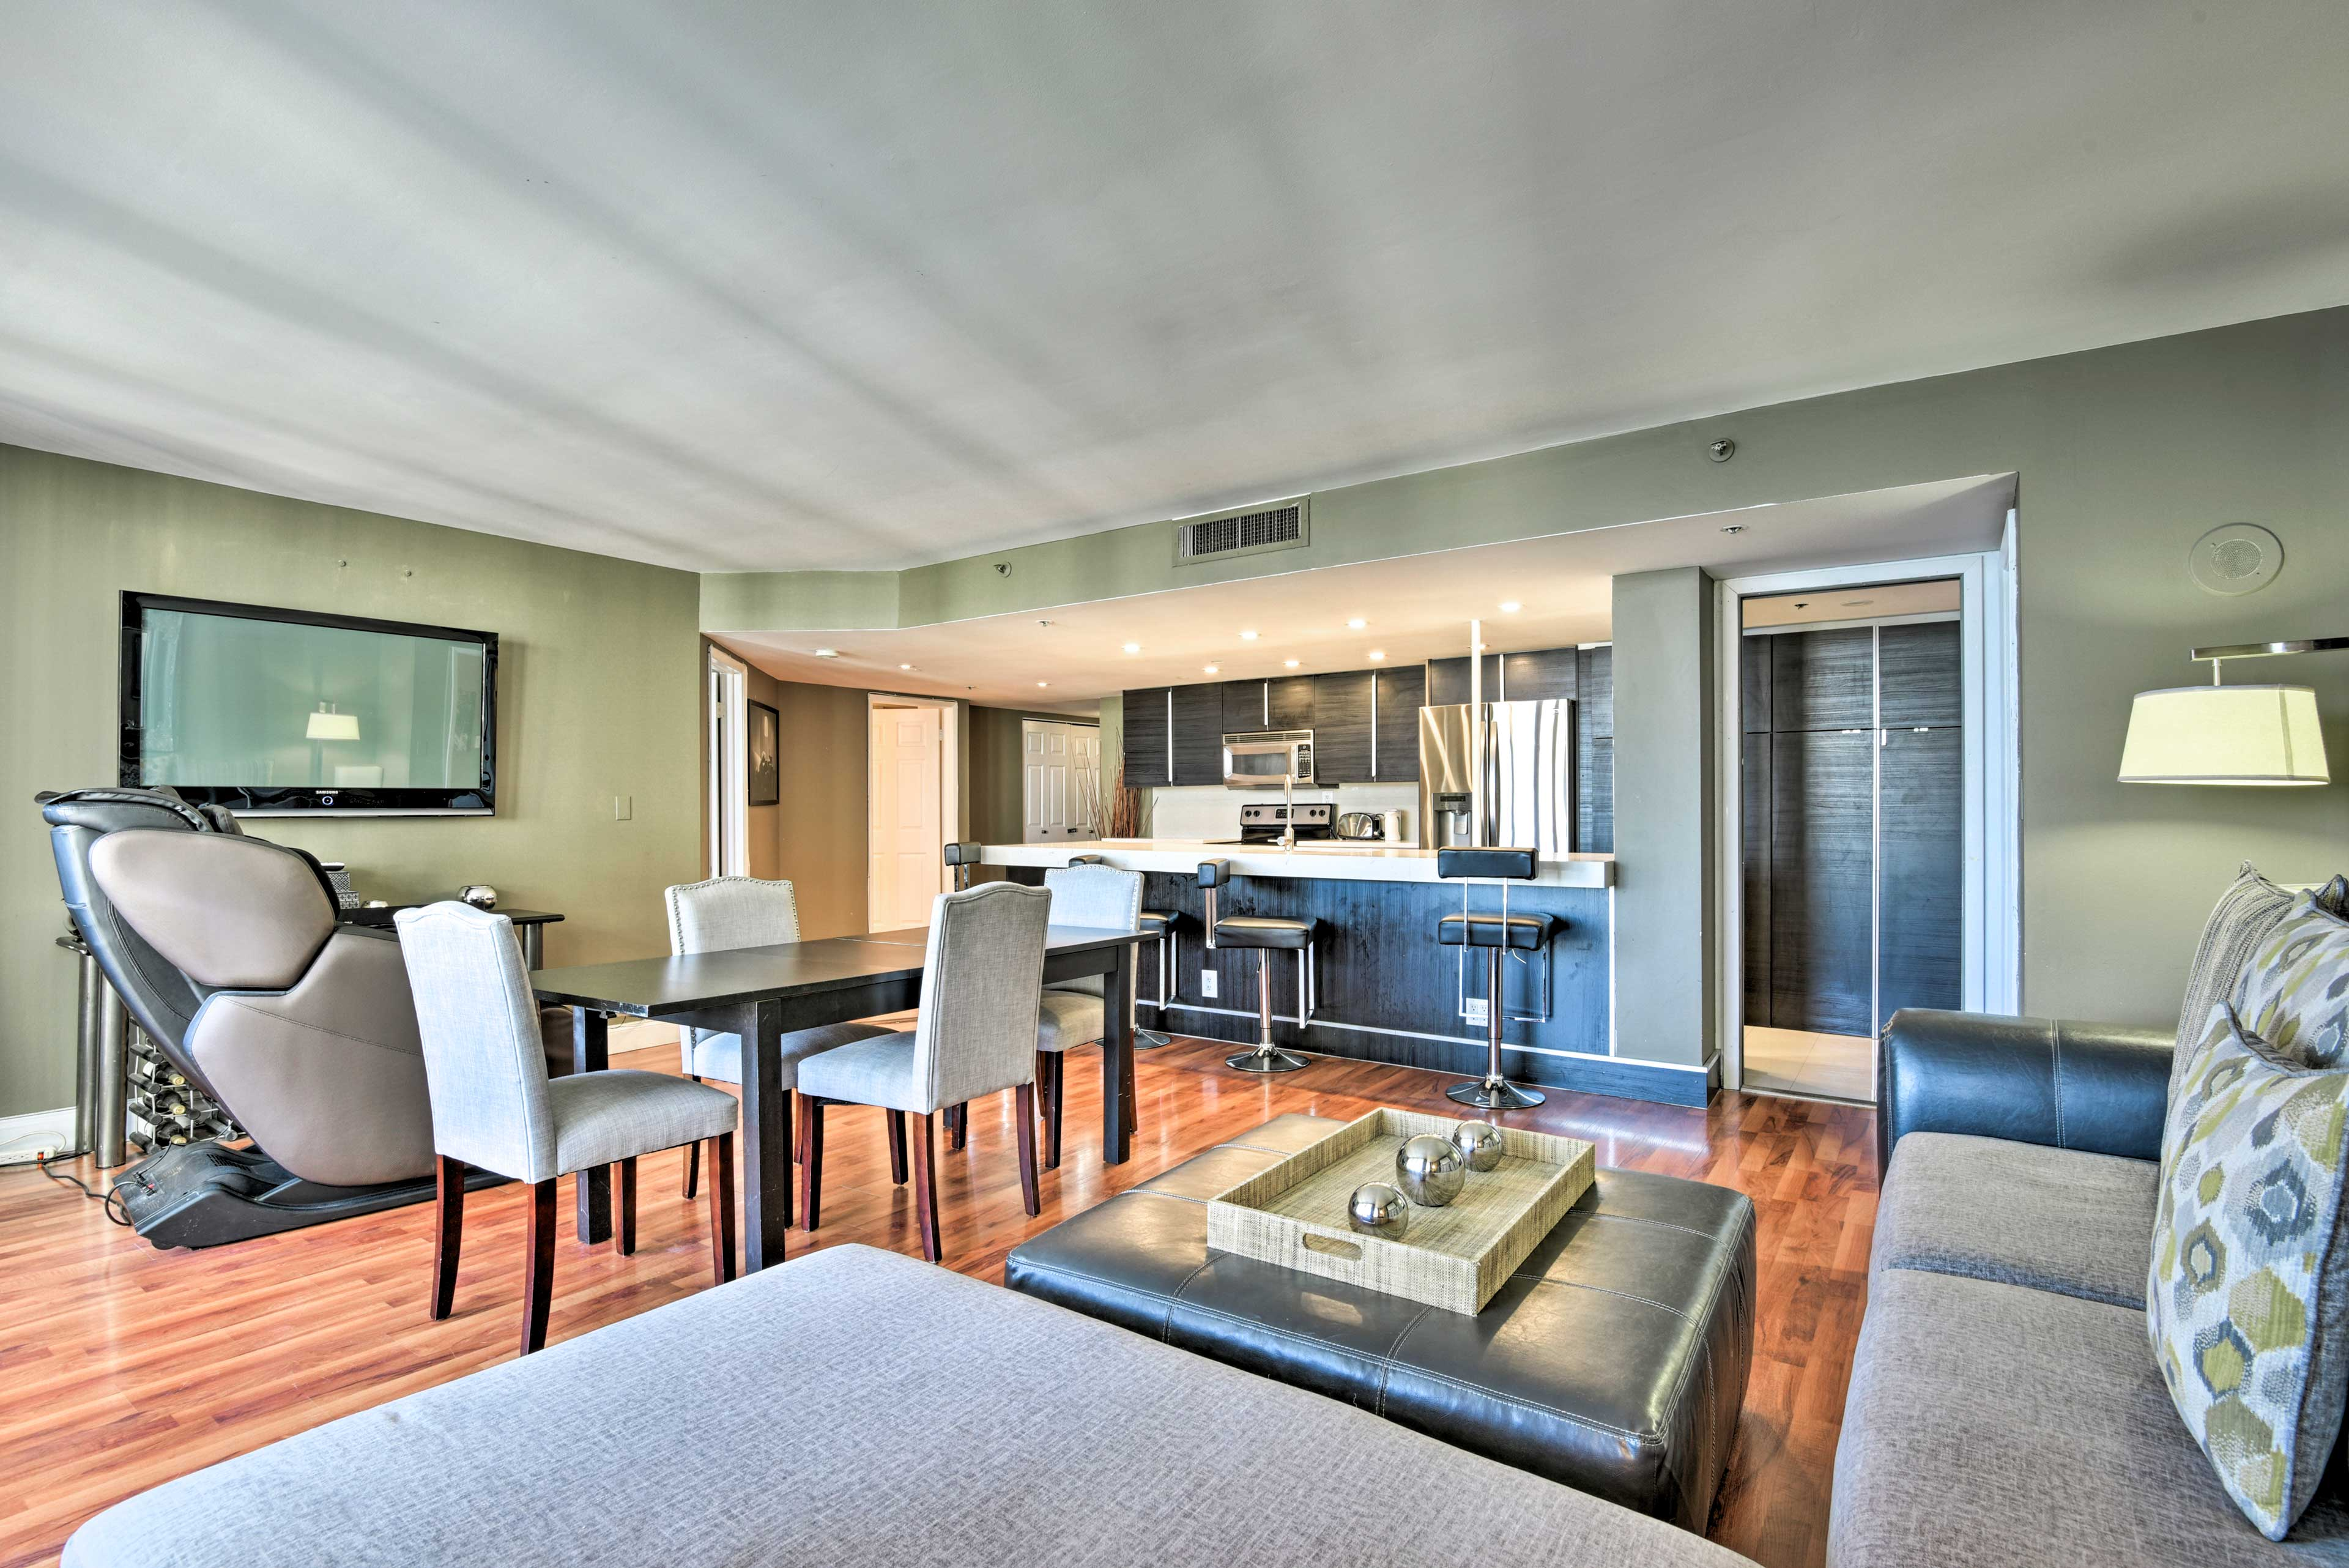 Book your Miami retreat to this 2-bedroom, 2-bath vacation rental penthouse!